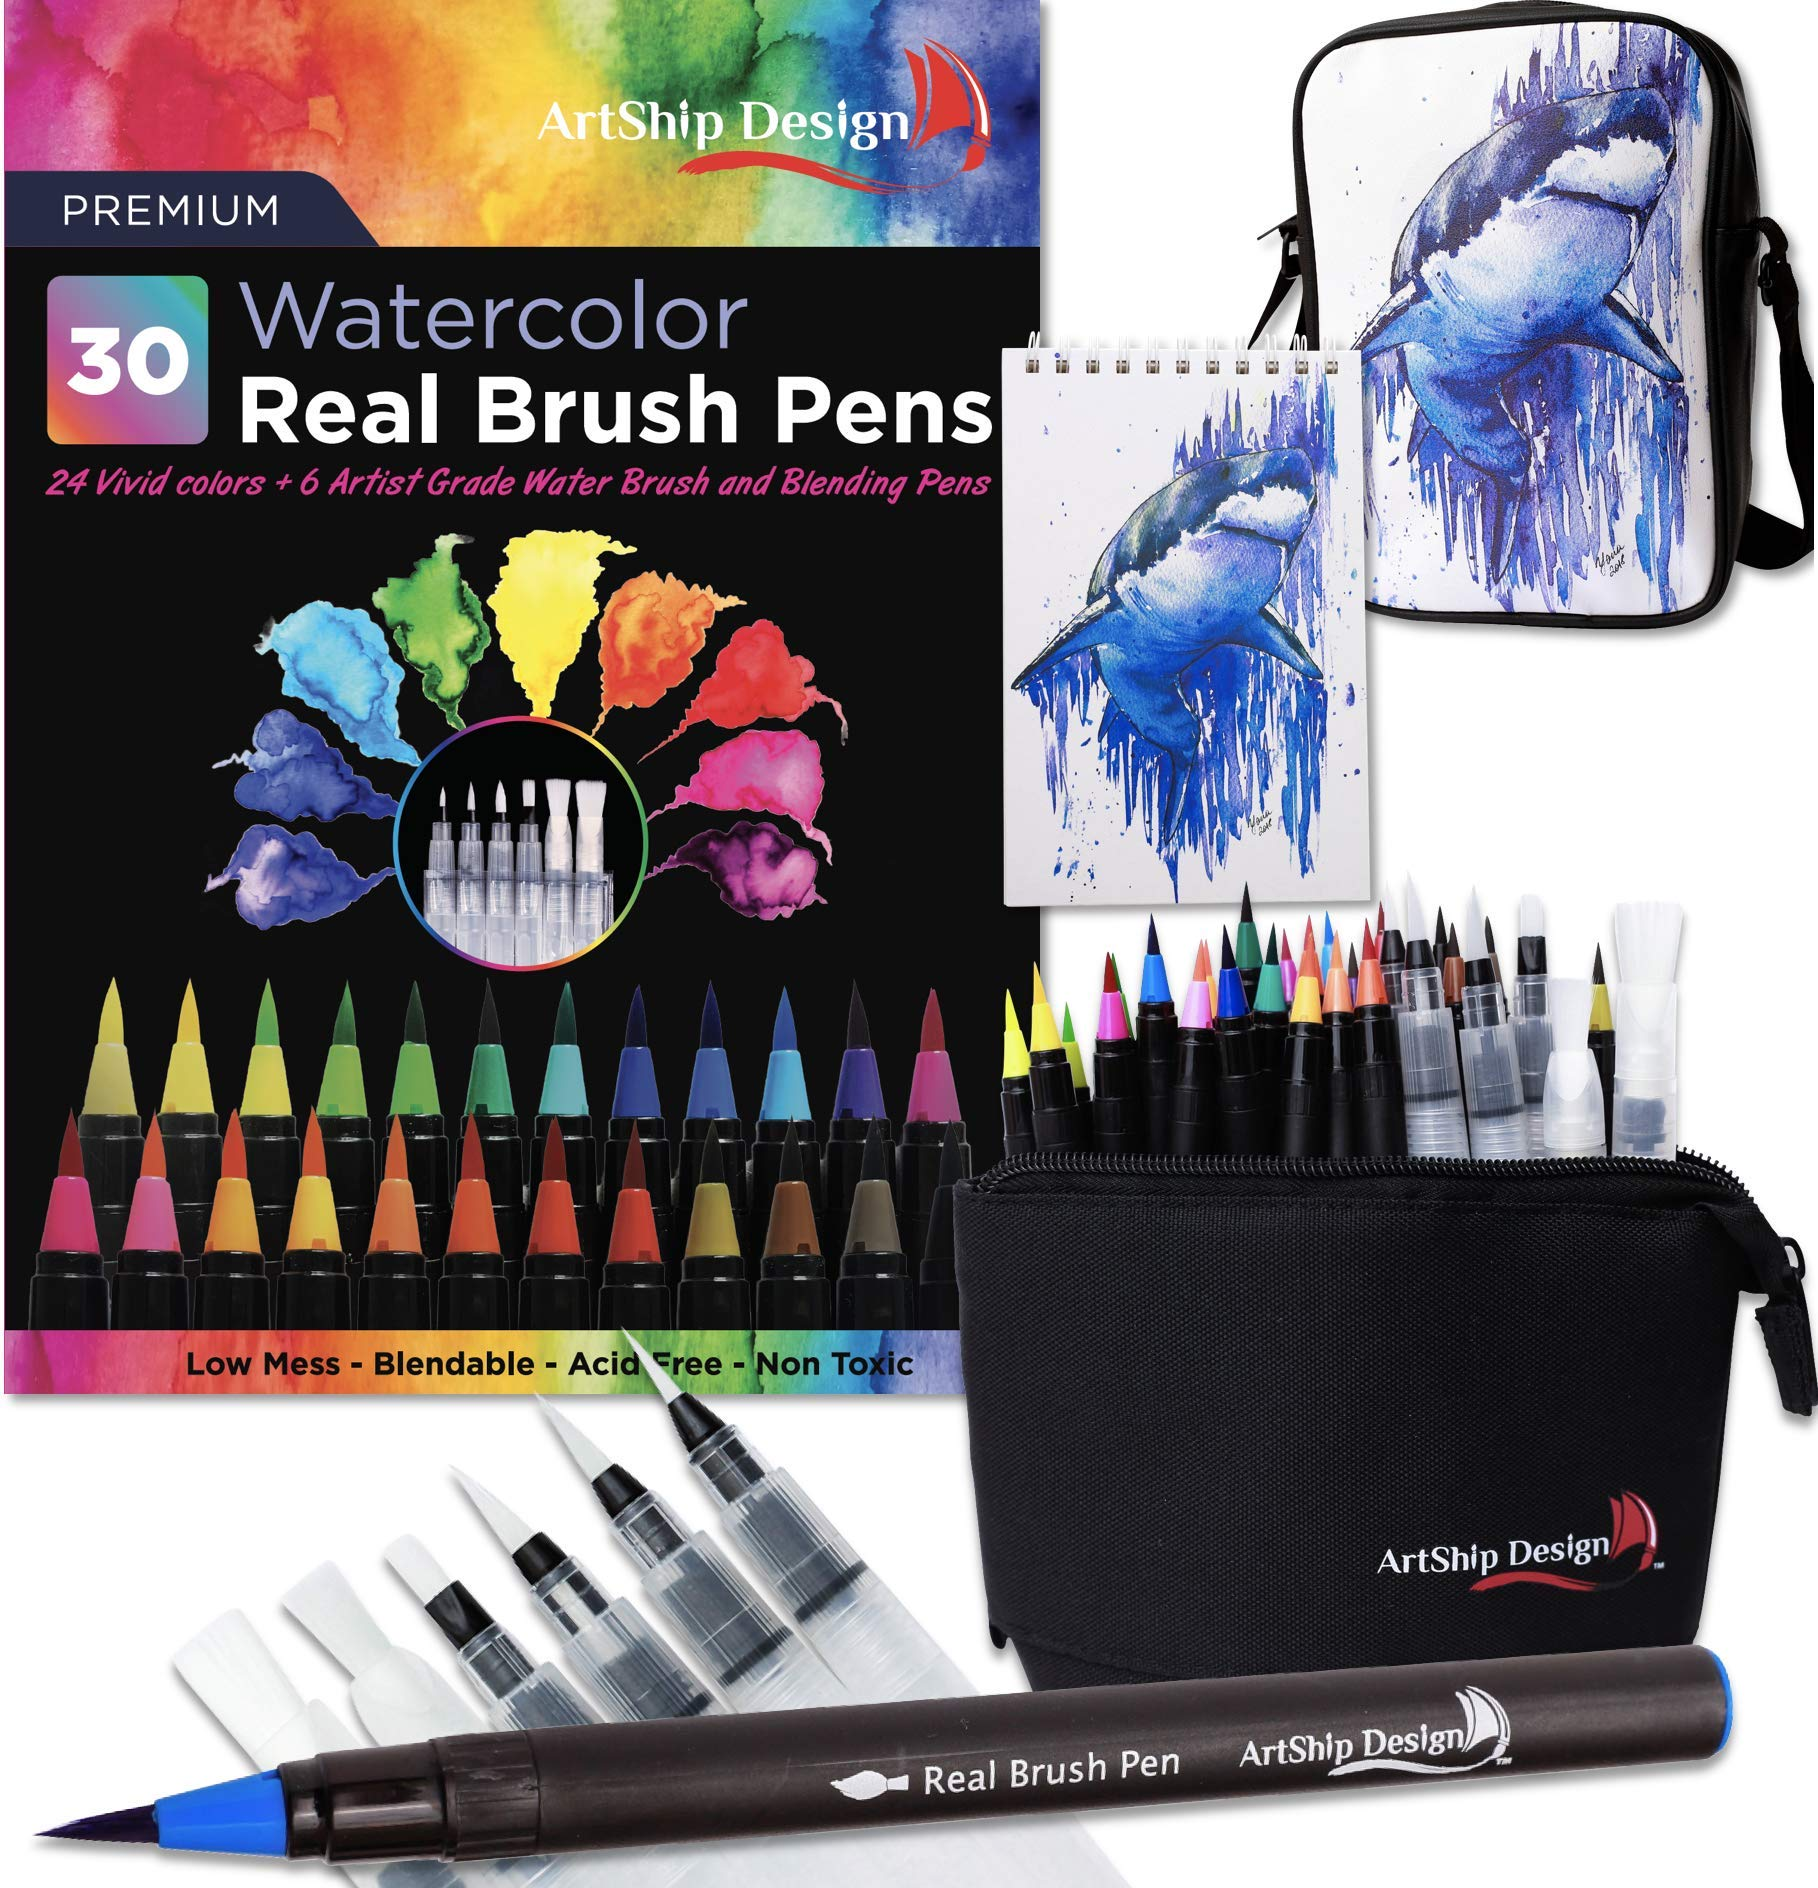 Gift Pack 30 Watercolor Brush Pens, Matching Messenger Bag and Watercolor Pad, Custom Folding Upright Pen Case, 24 Colors 6 Water Brushes, Real Nylon Brush Tips, Watercolor Painting, Low Mess, Shark